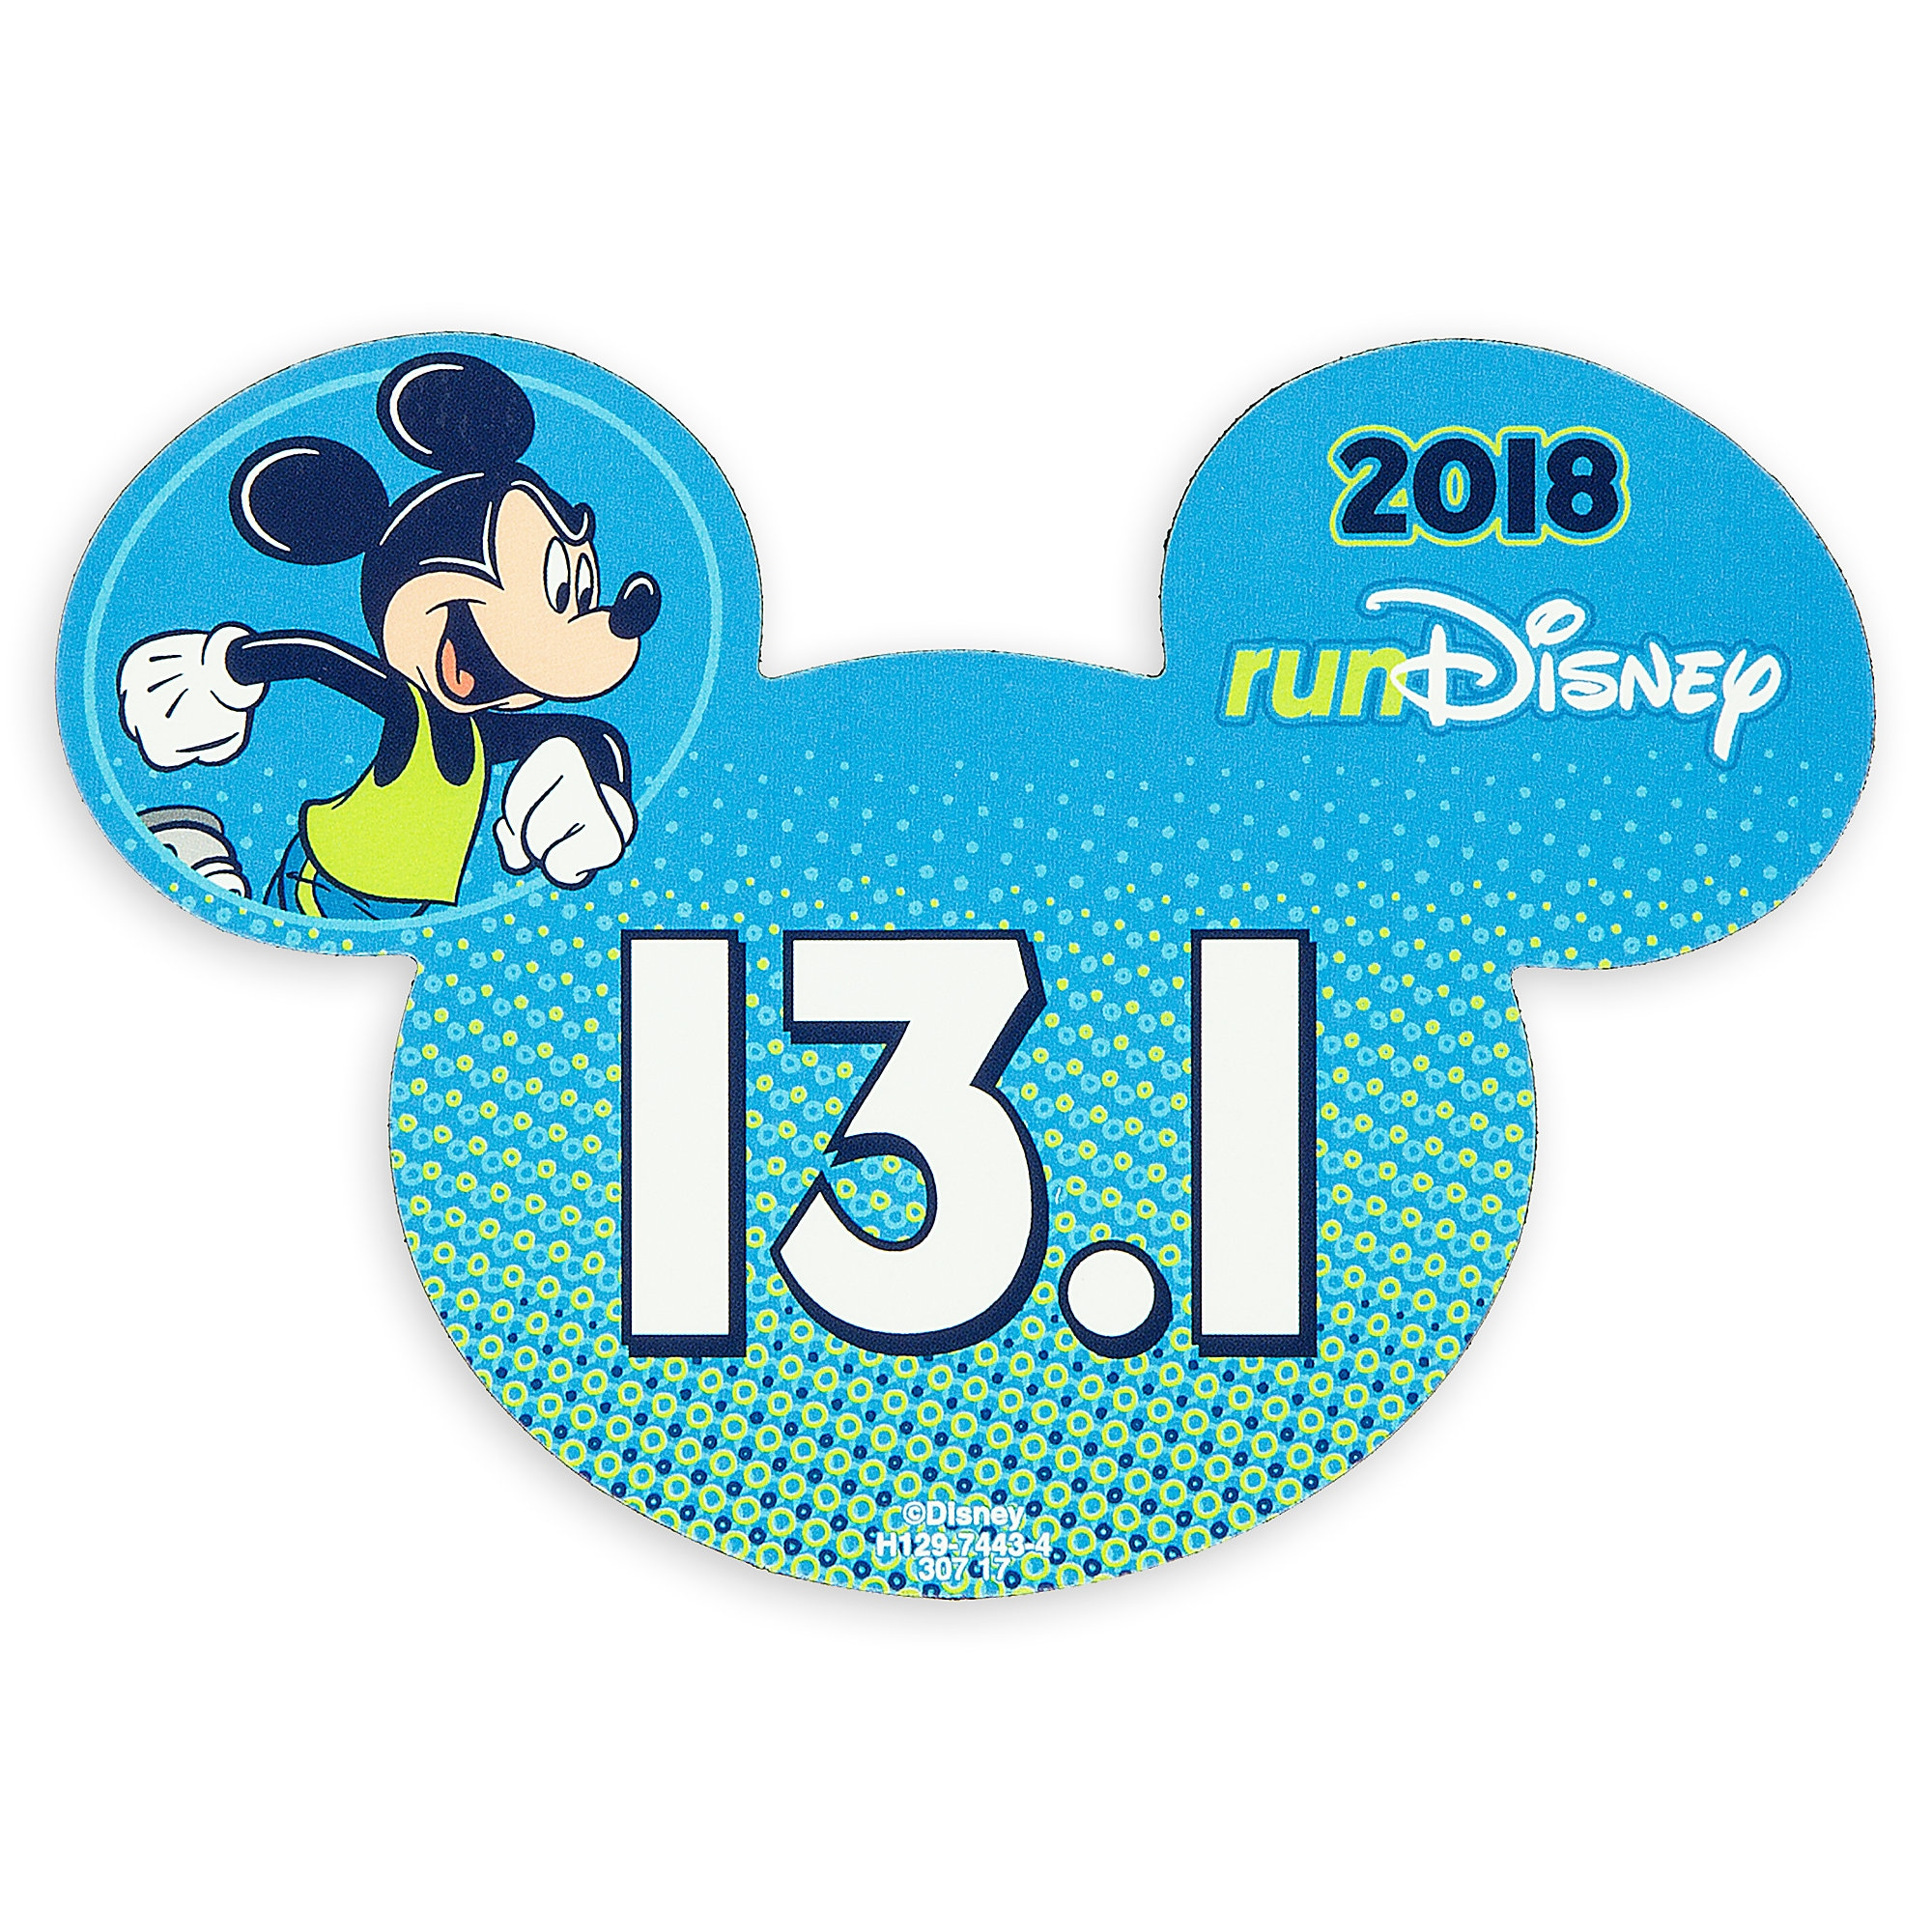 Mickey Mouse runDisney 2018 Magnet - 13.1